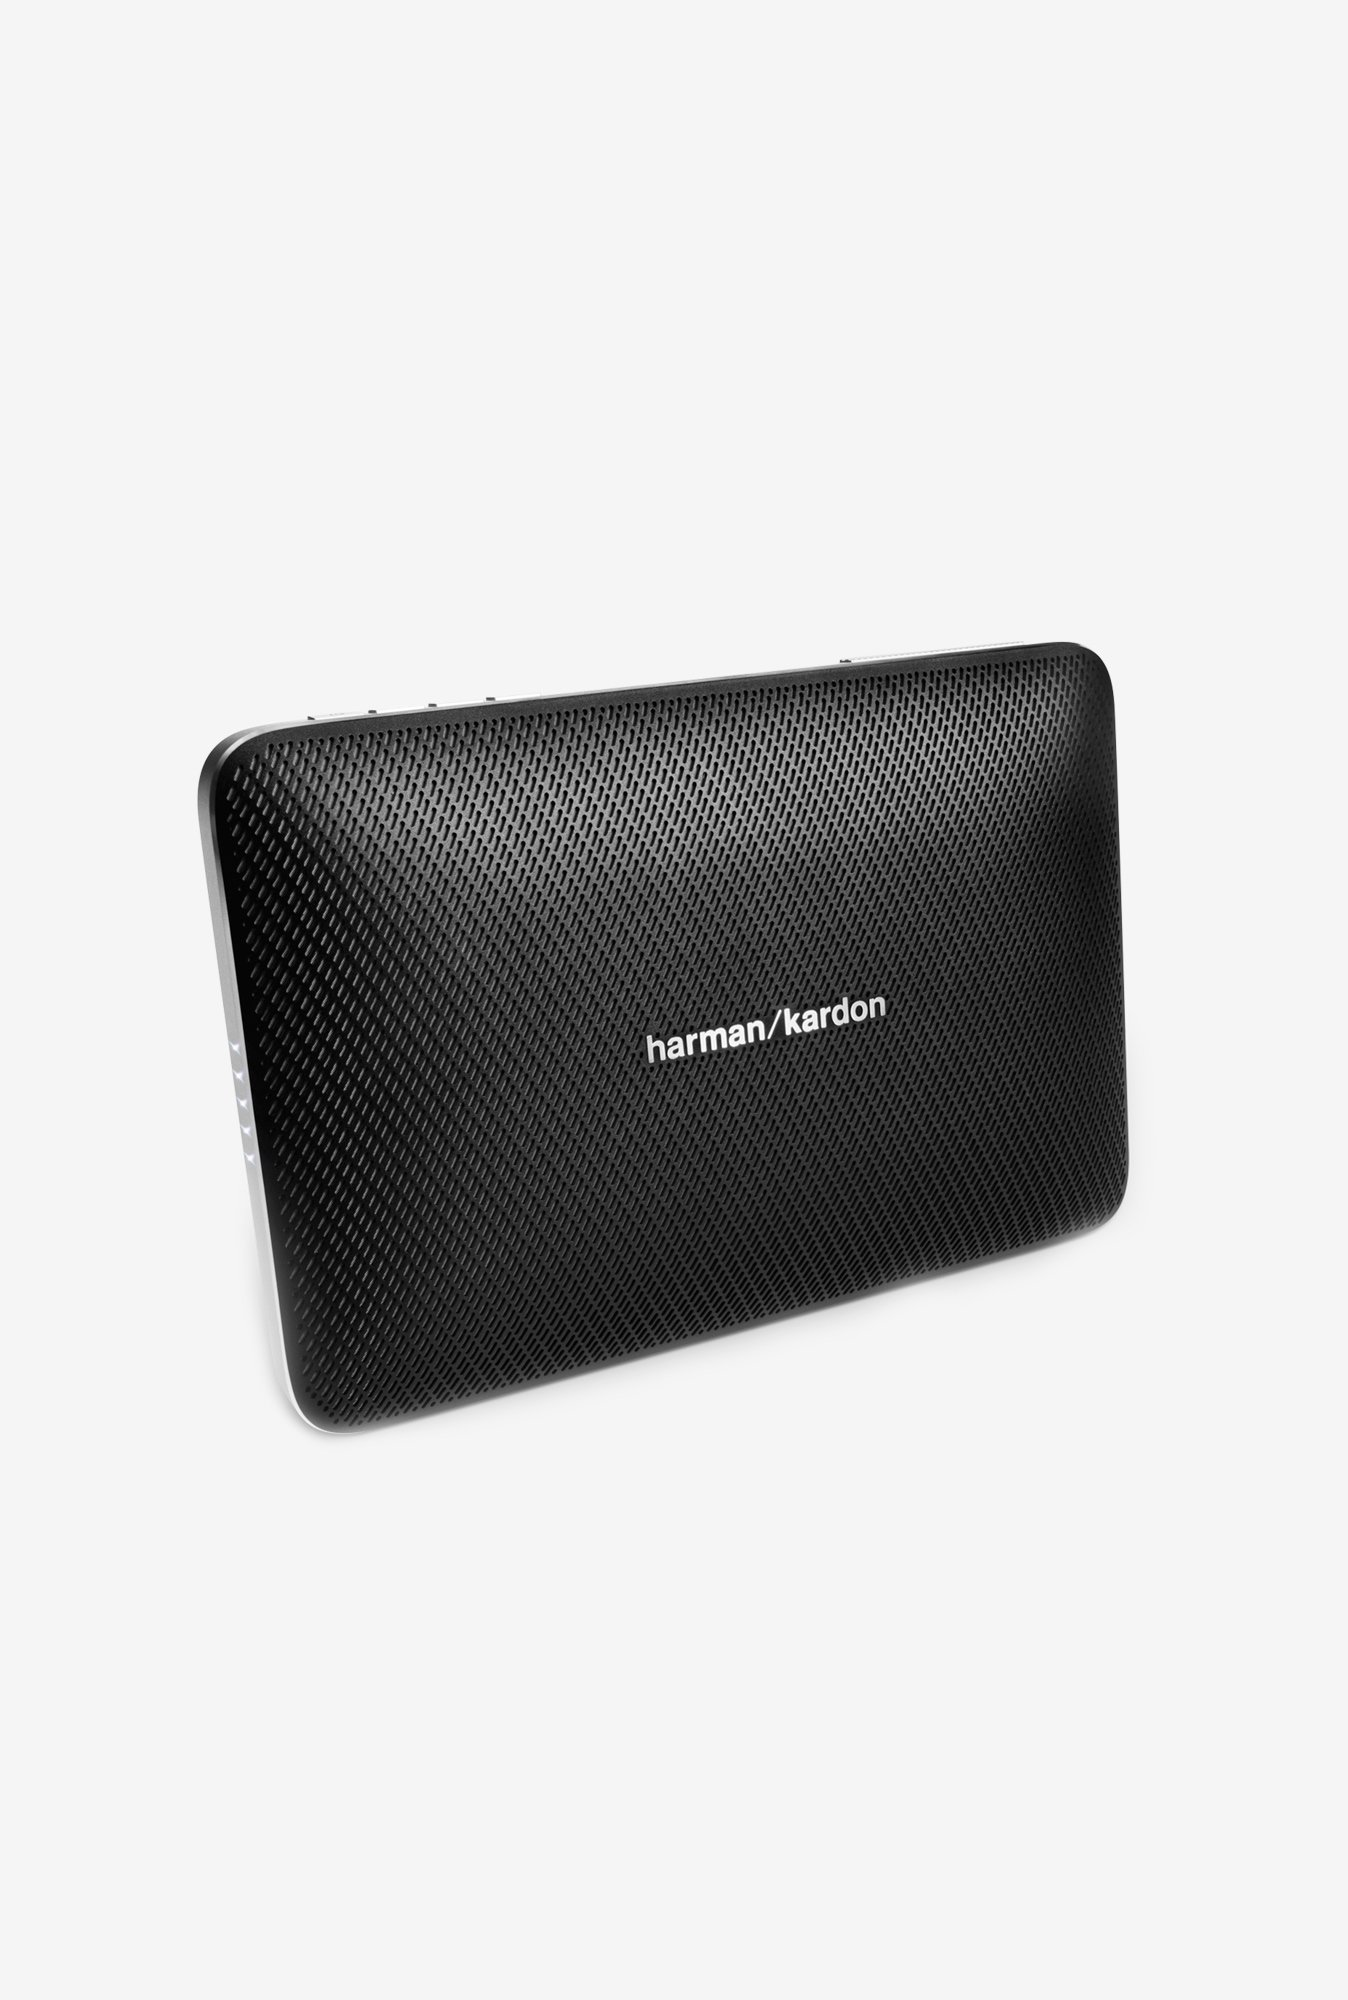 Harman Kardon Esquire 2 Bluetooth Speakers Black